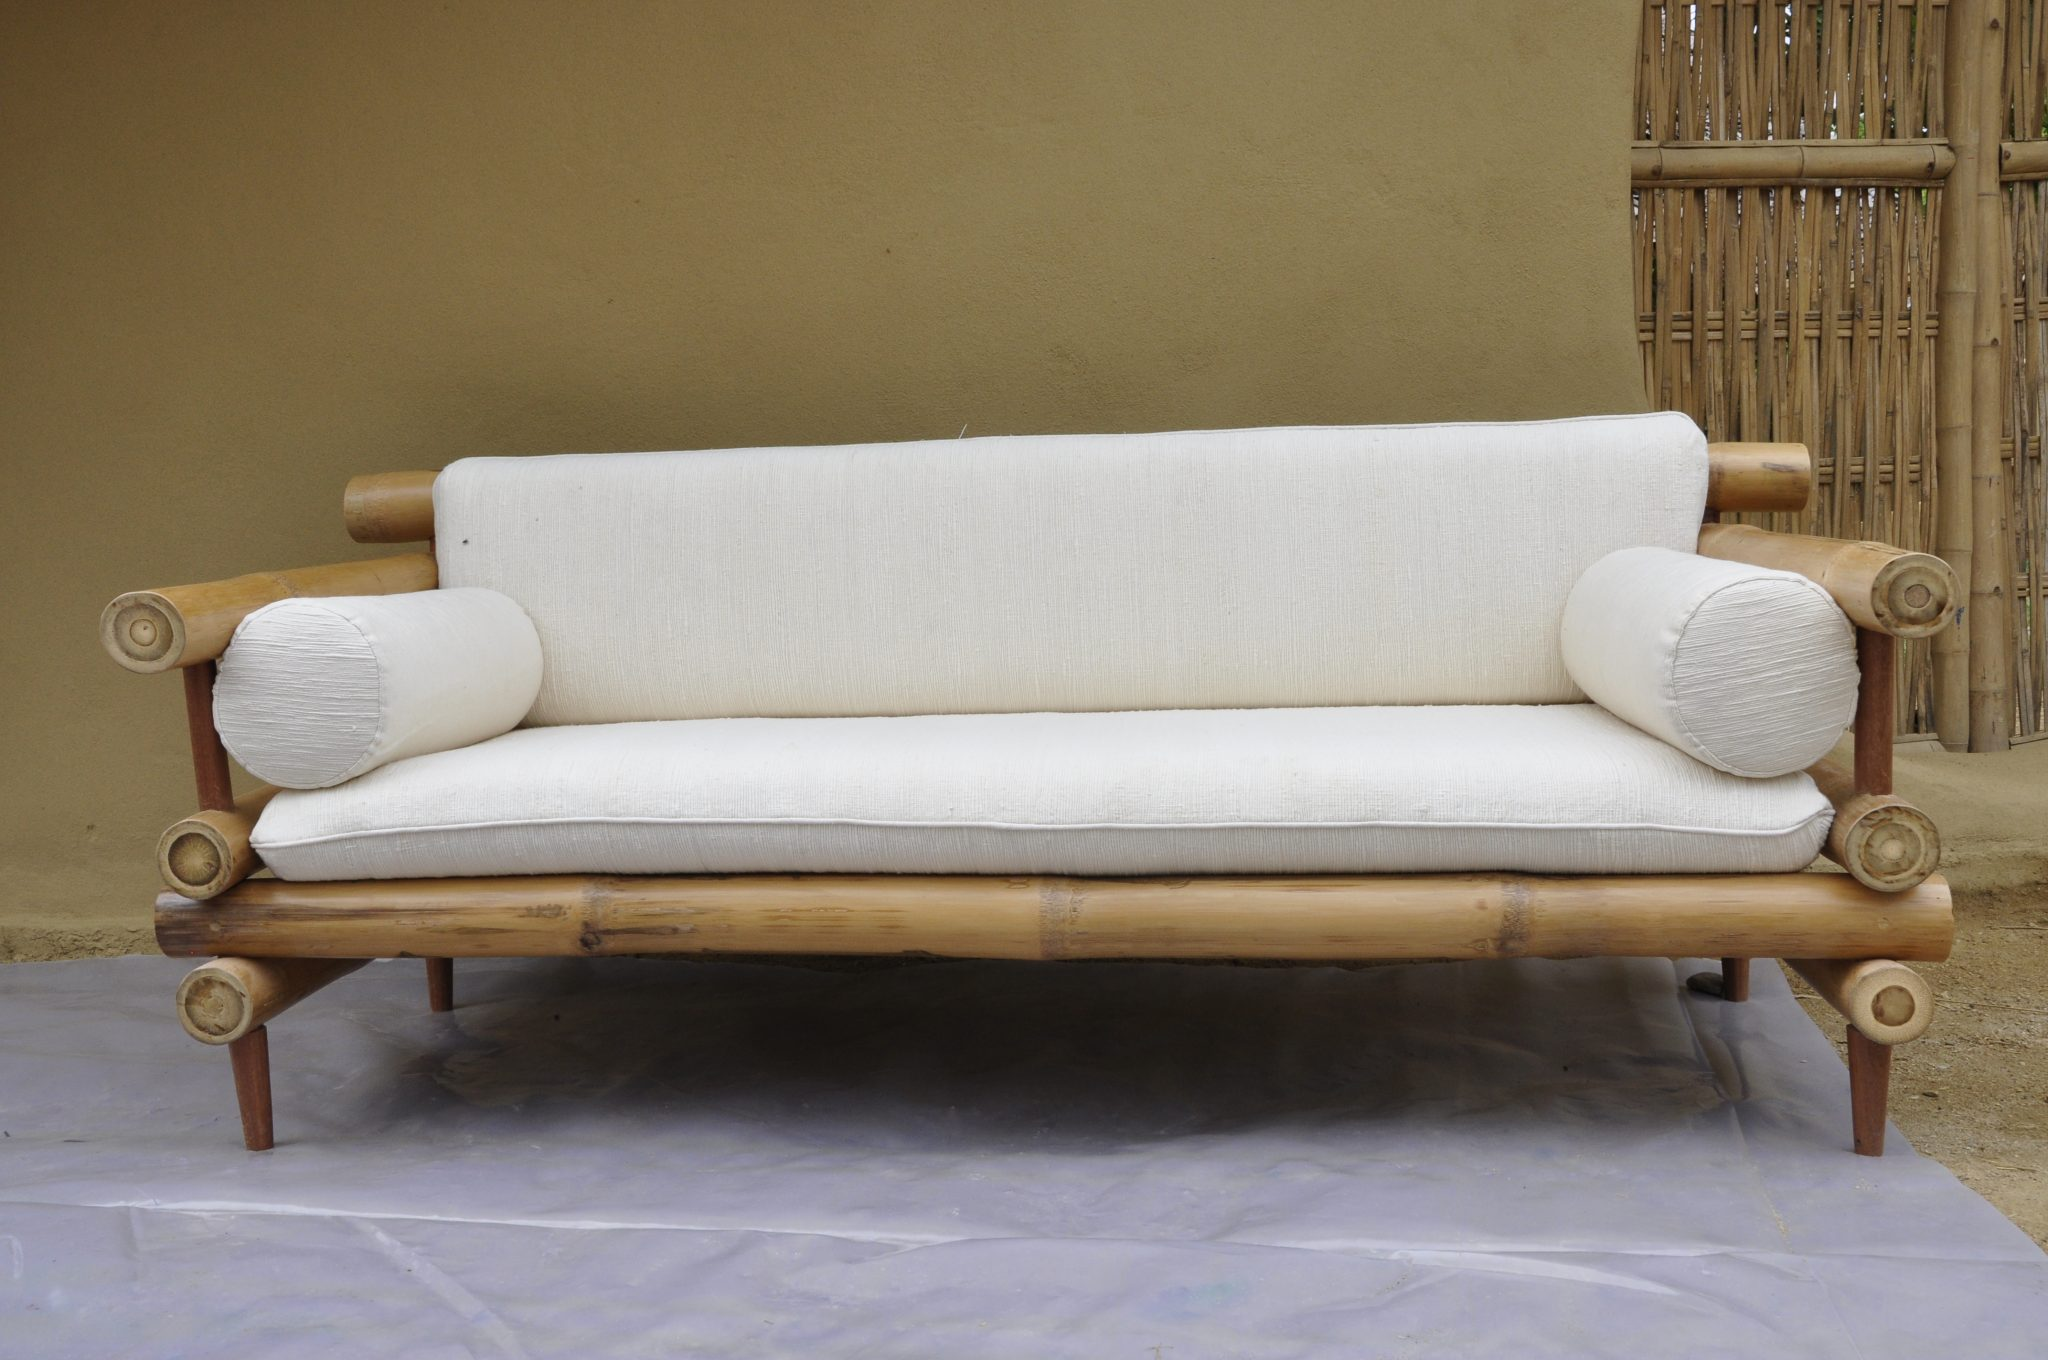 Bamboo sofa 2 arms size 200x75x60cm bamboo earth for Sofa 250 x 200